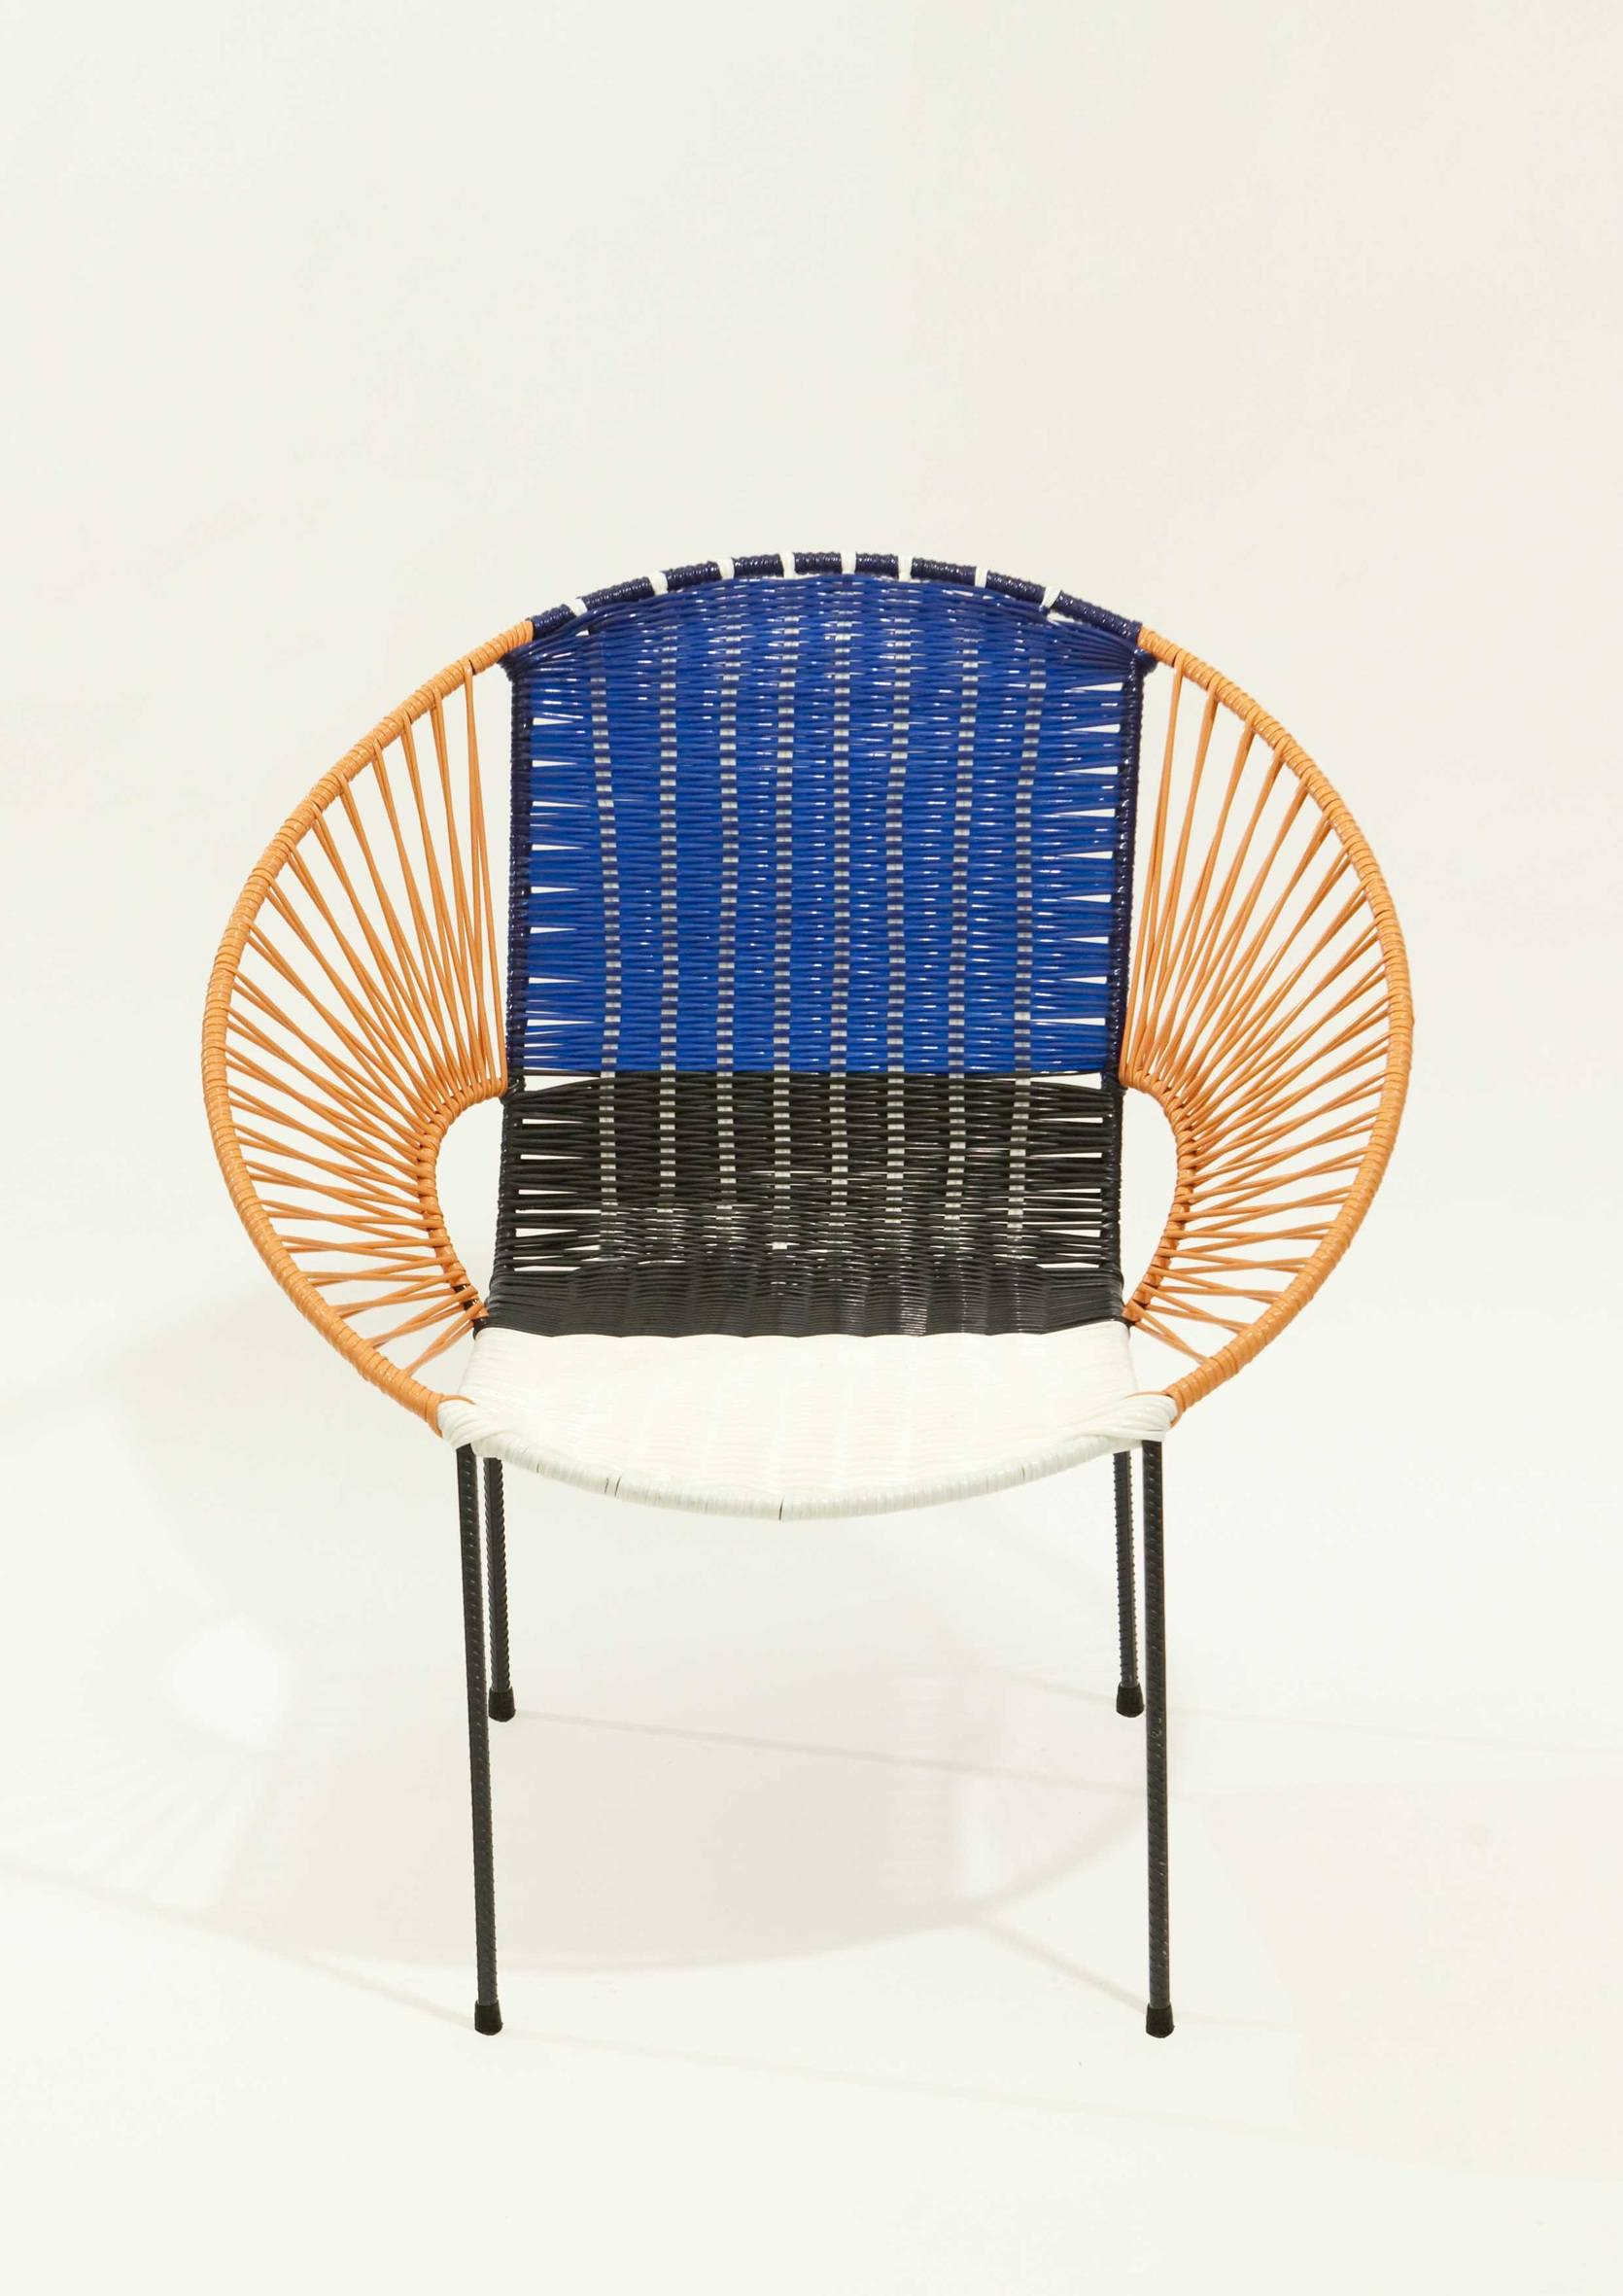 Marni Presents The 2013 Edition Of The Project U201c100 Chairs;u201d Unveiled In  The New Space In Viale Umbria 42 In Milan, The Colors Of The Collection  Reflect ...